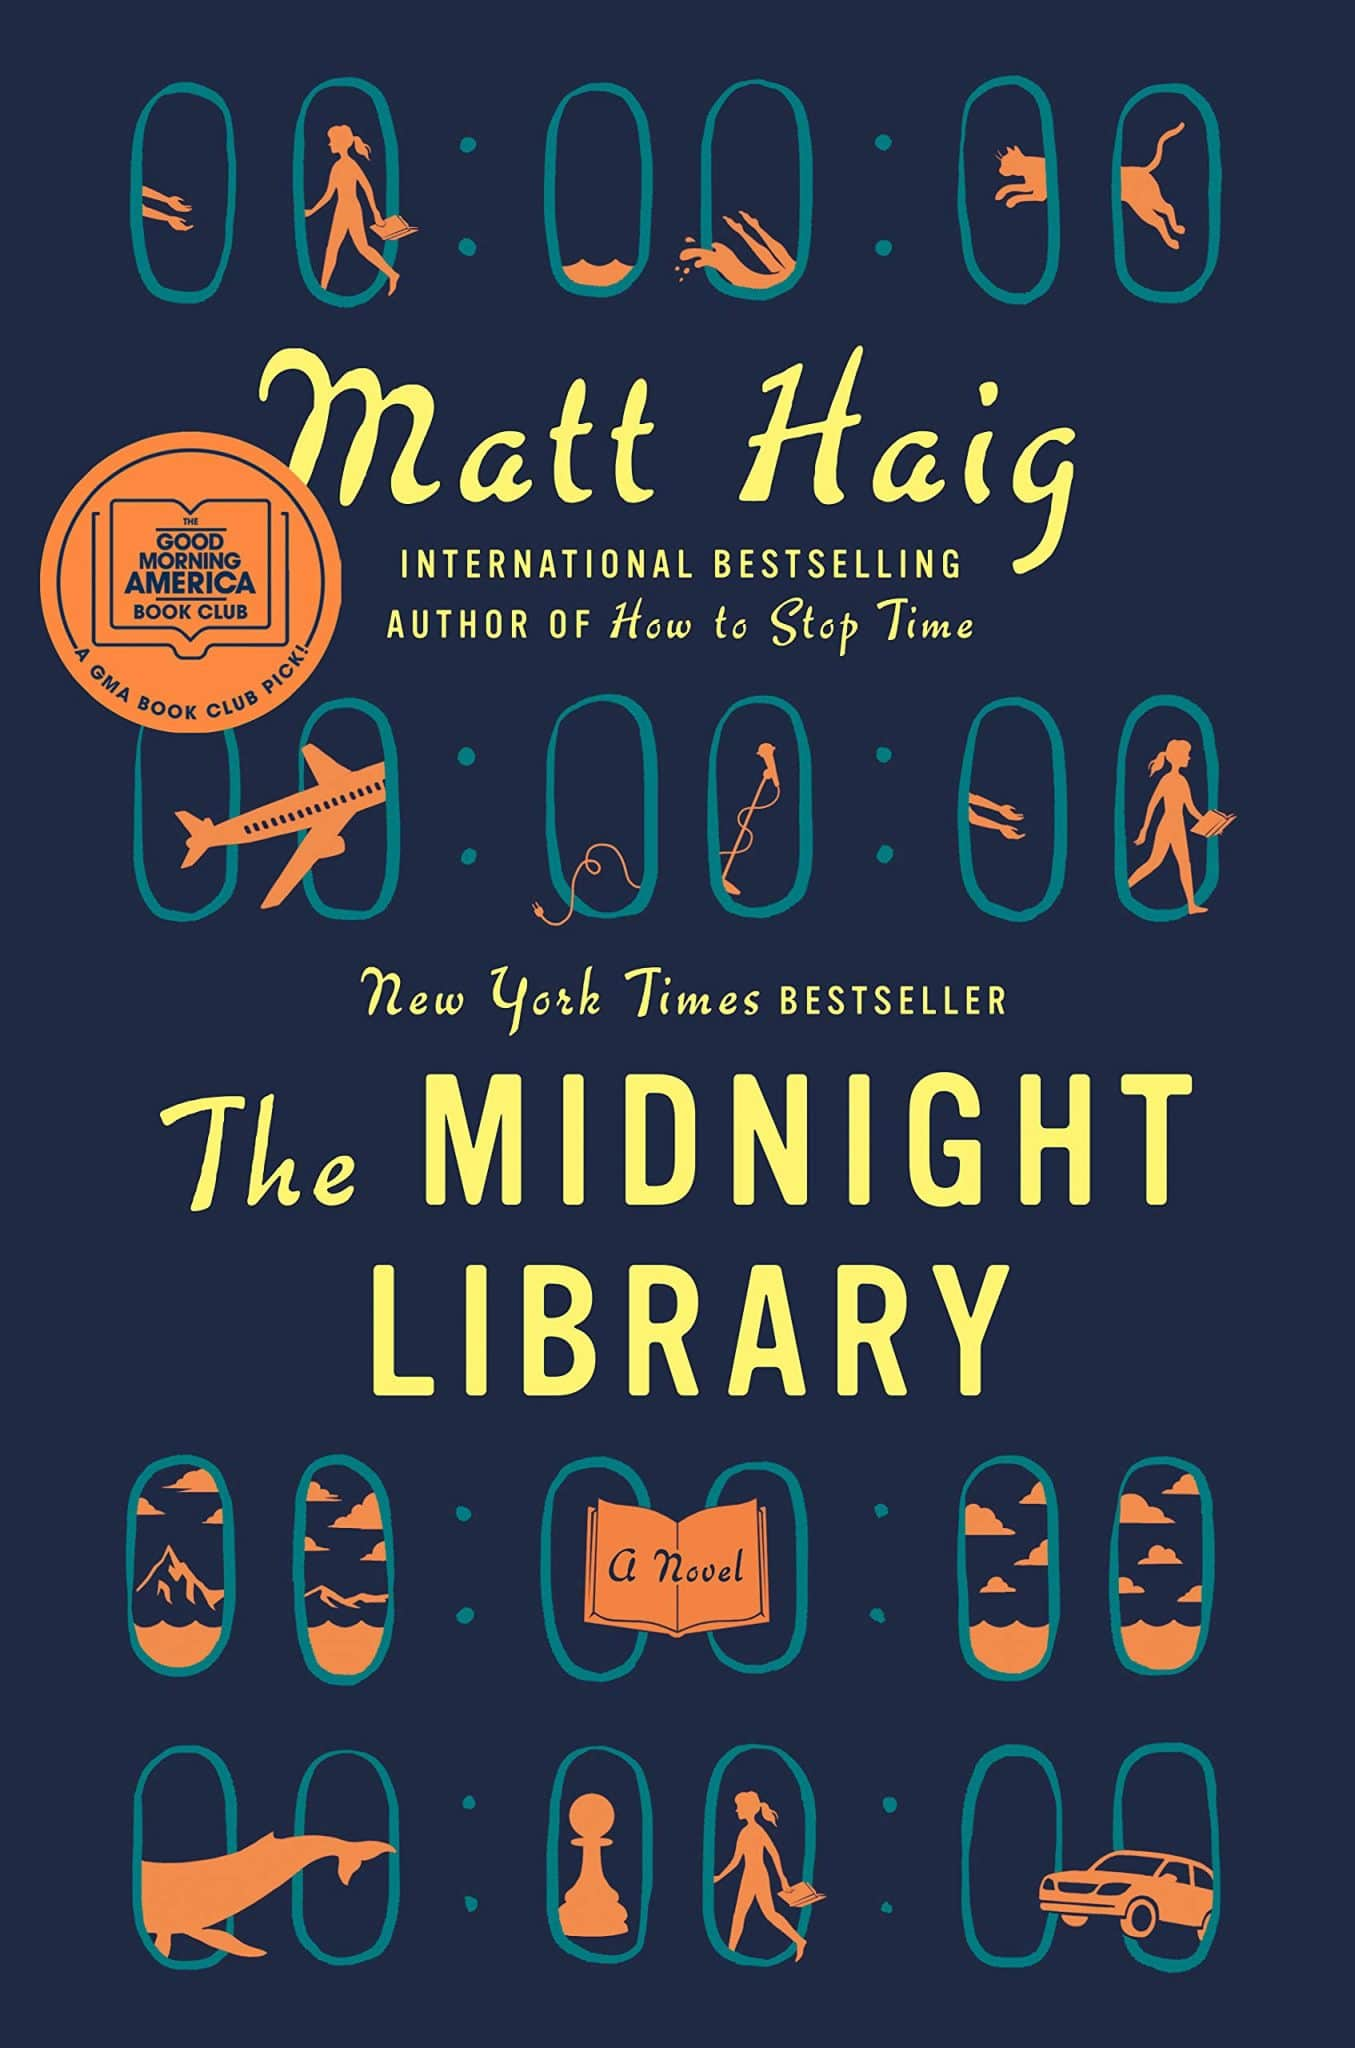 front cover of the book The Midnight Library by Matt Haig